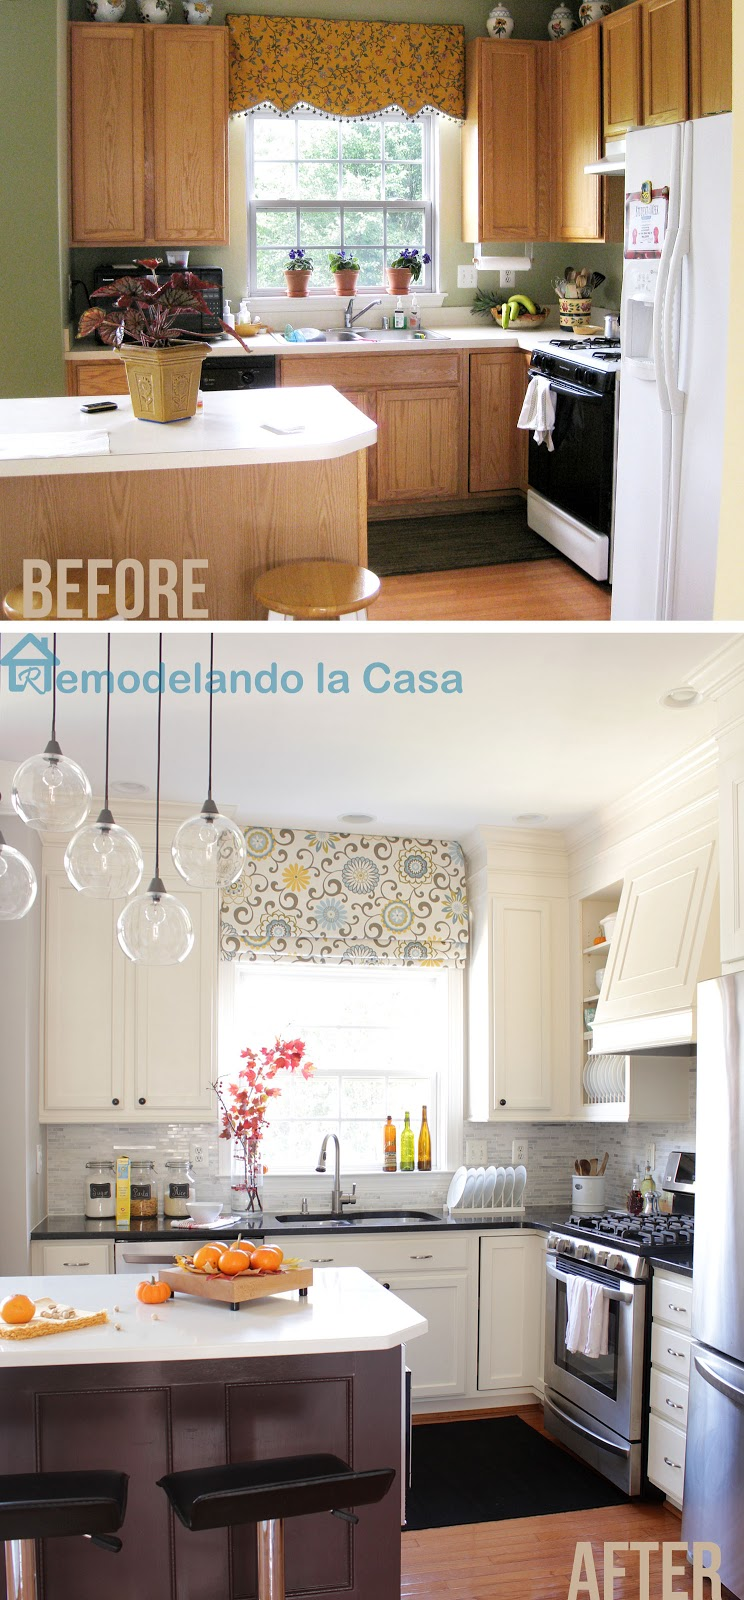 Kitchen makeover remodelando la casa for Small kitchen makeover ideas on a budget